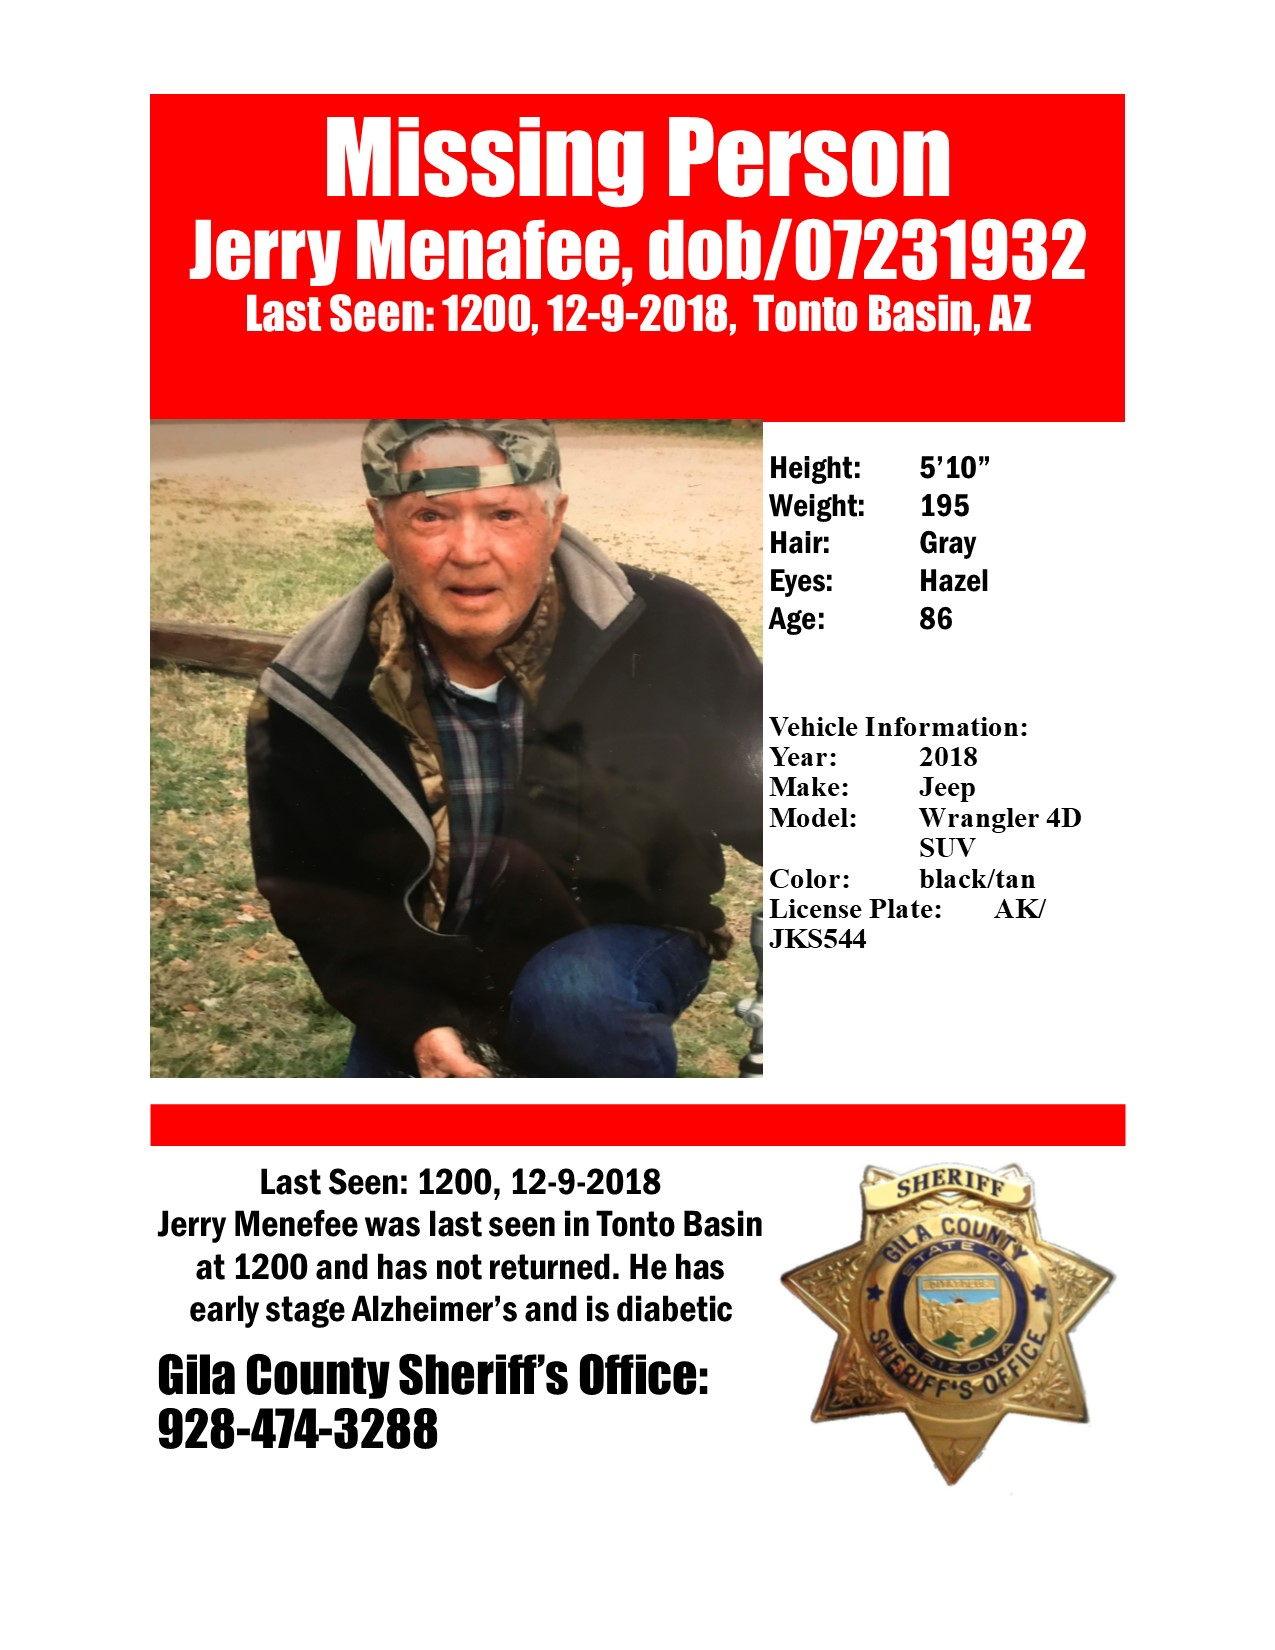 Silver Alert – Jerry Menafee – Gila Co. Sheriff's Office